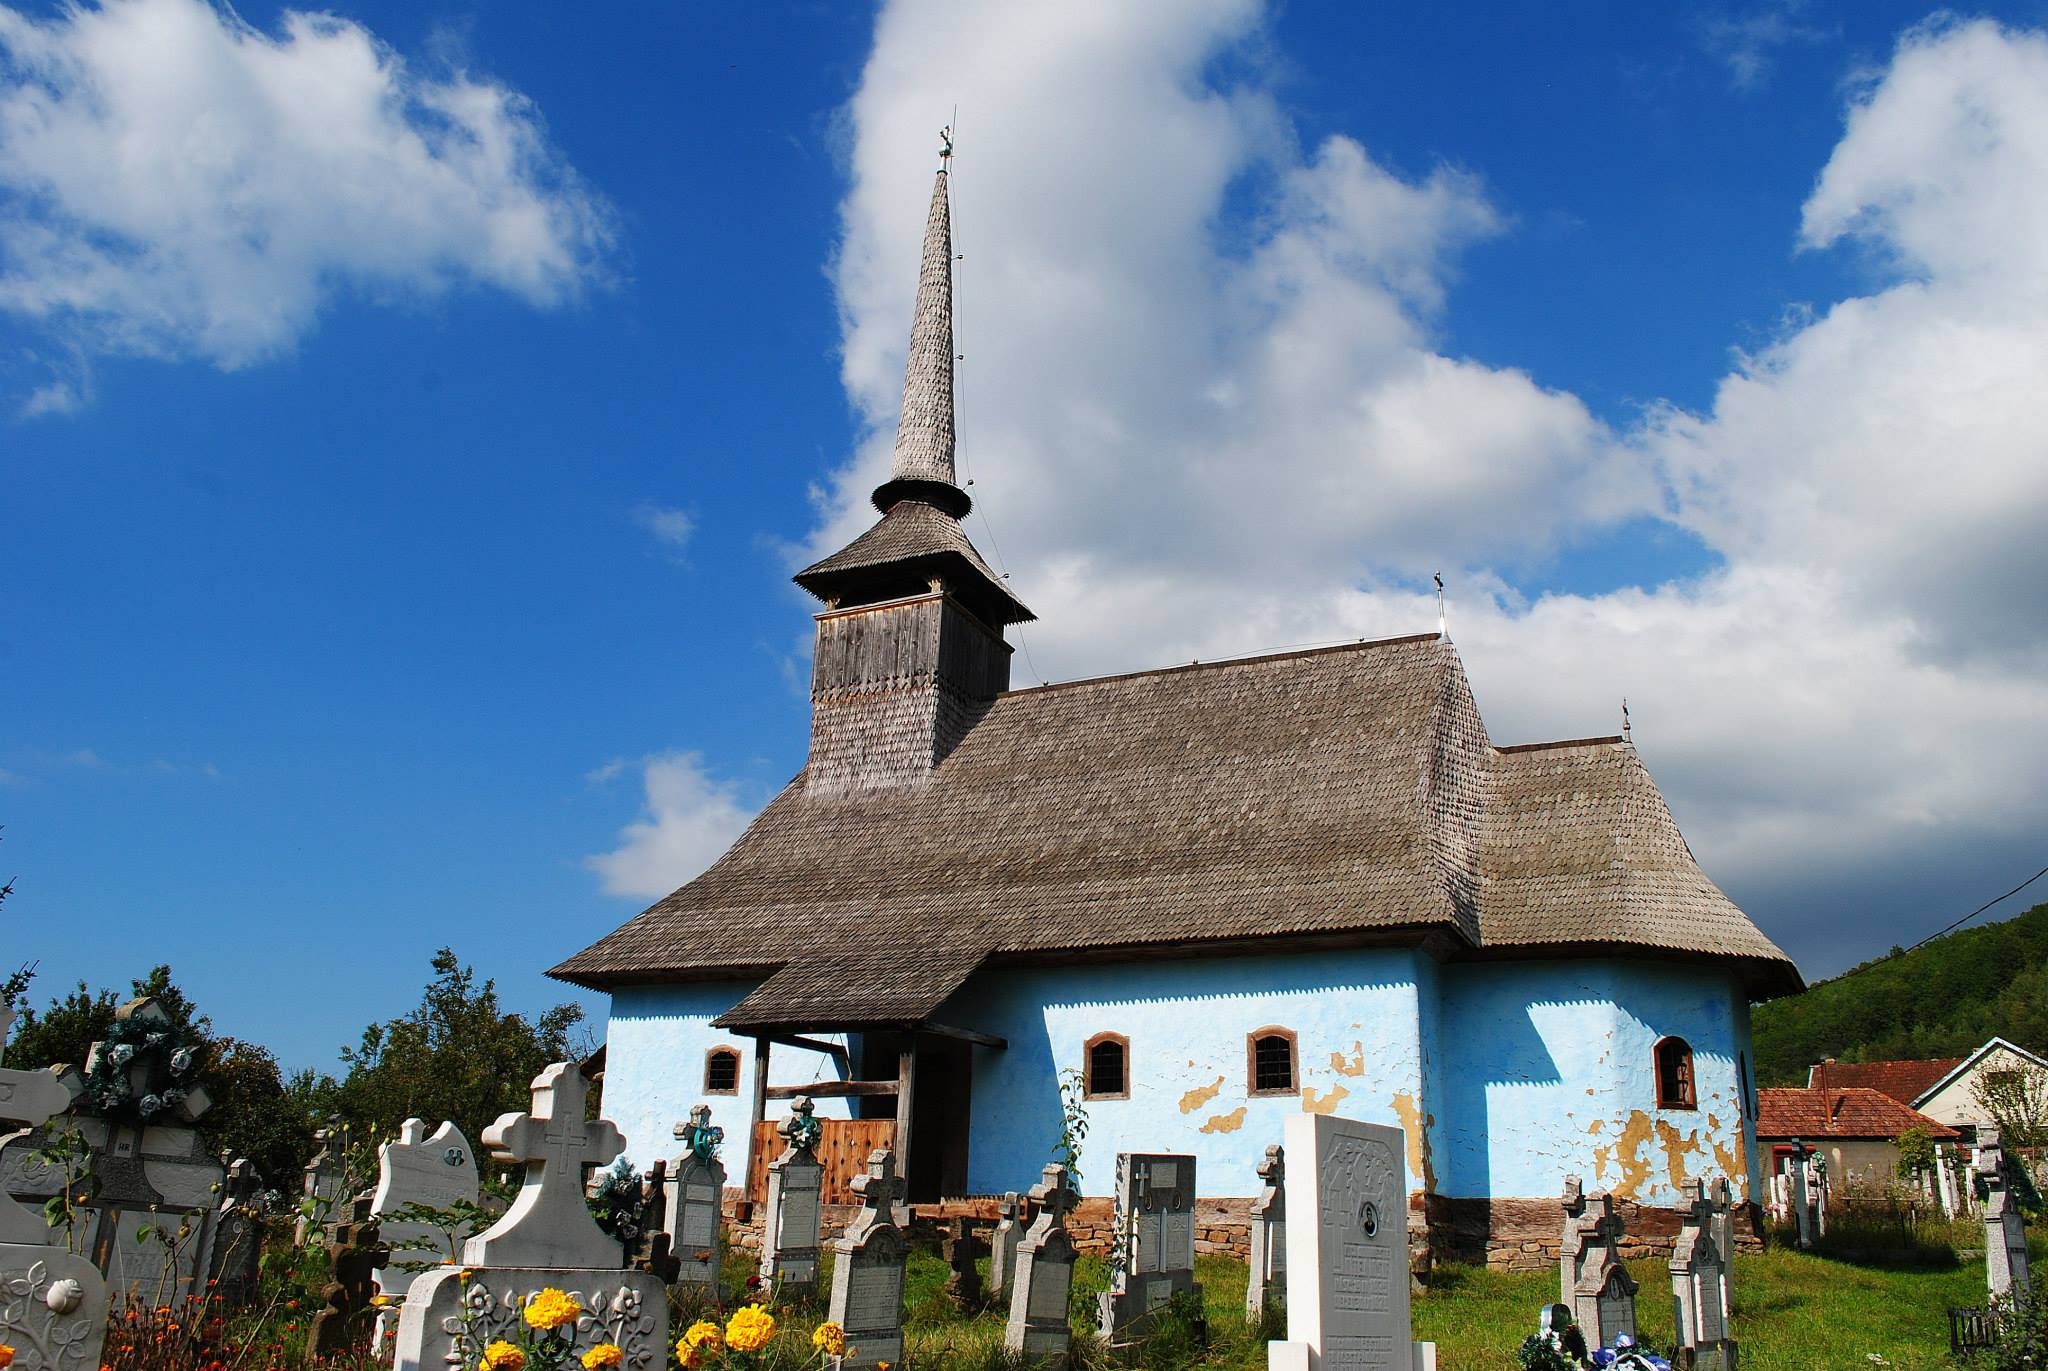 The wooden church in Fânaţe village